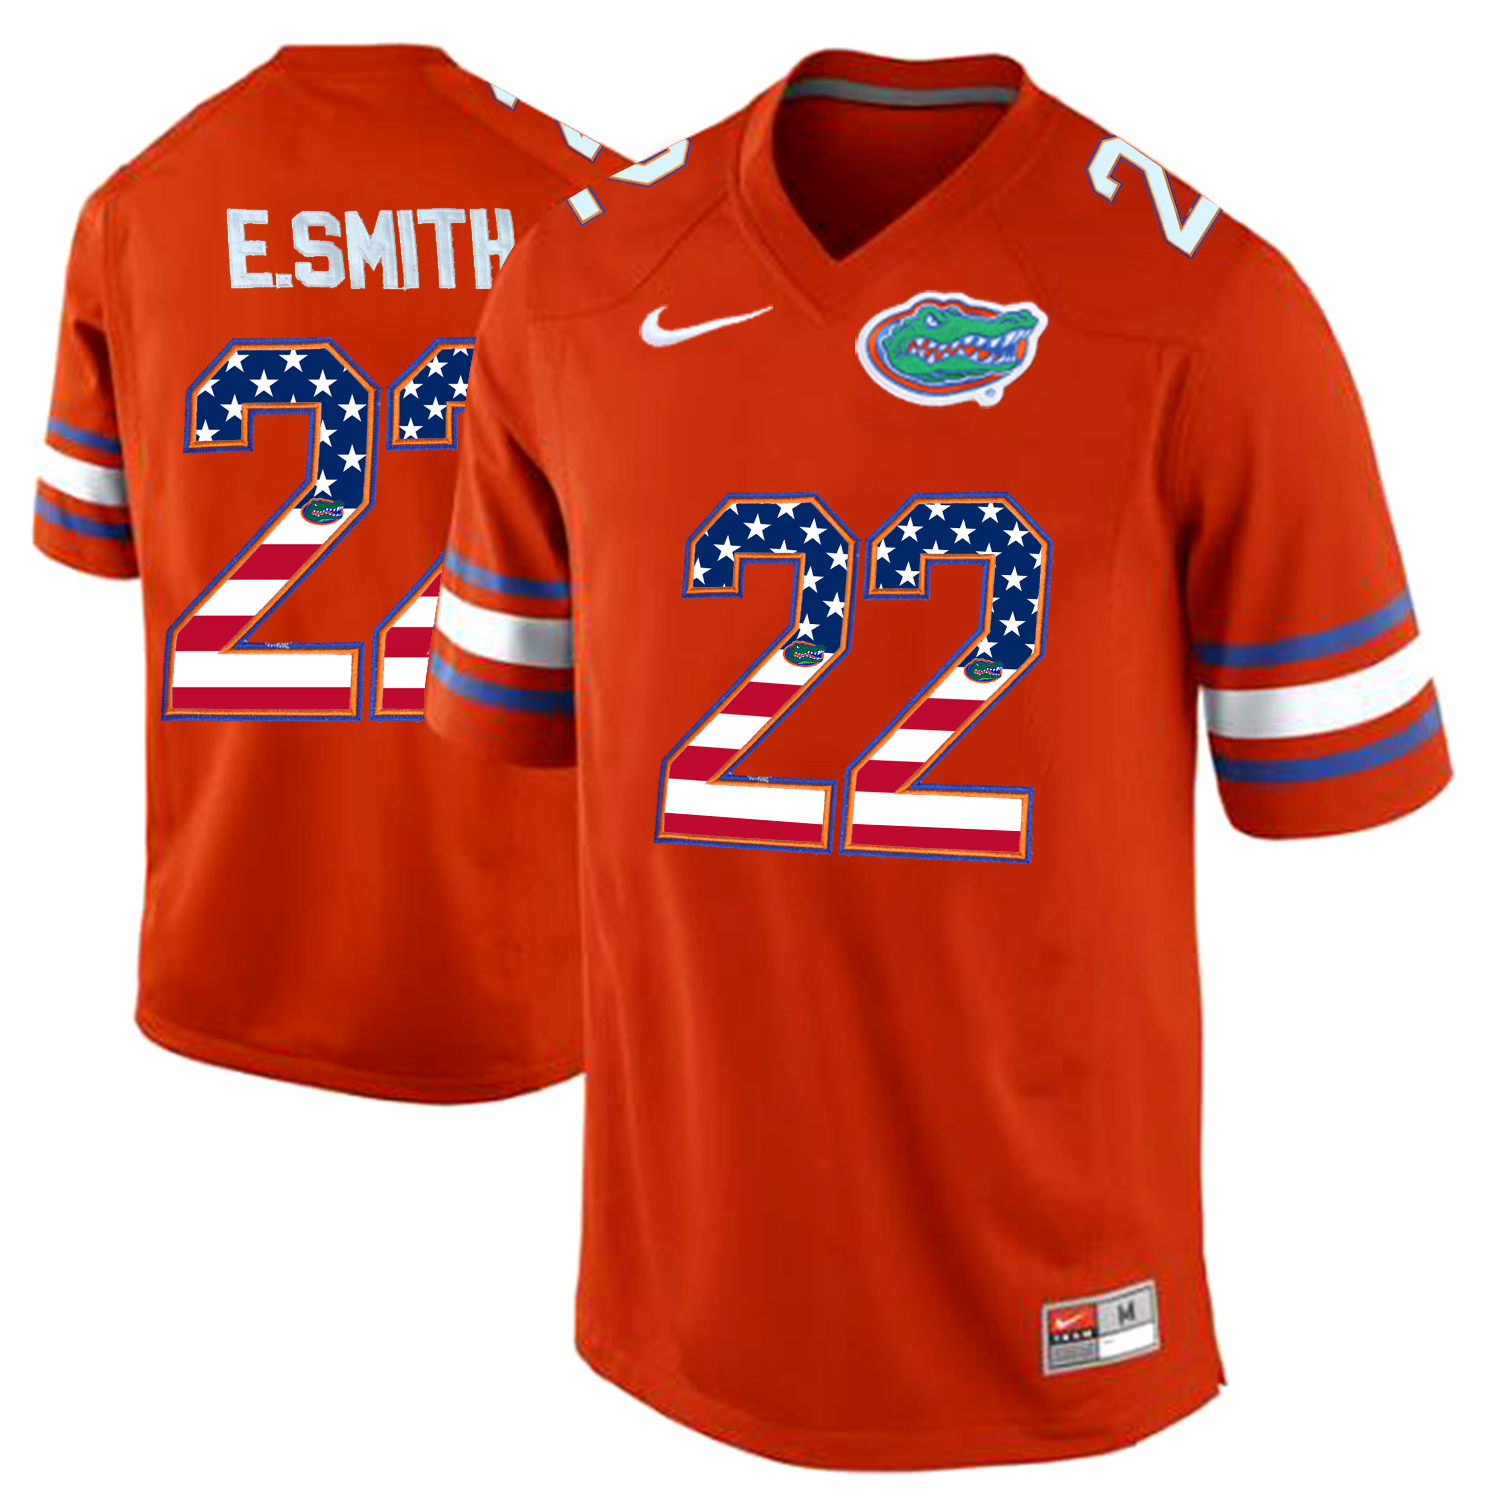 2016 US Flag Fashion Florida Gators E.Smith 22 College Football Jersey Orange